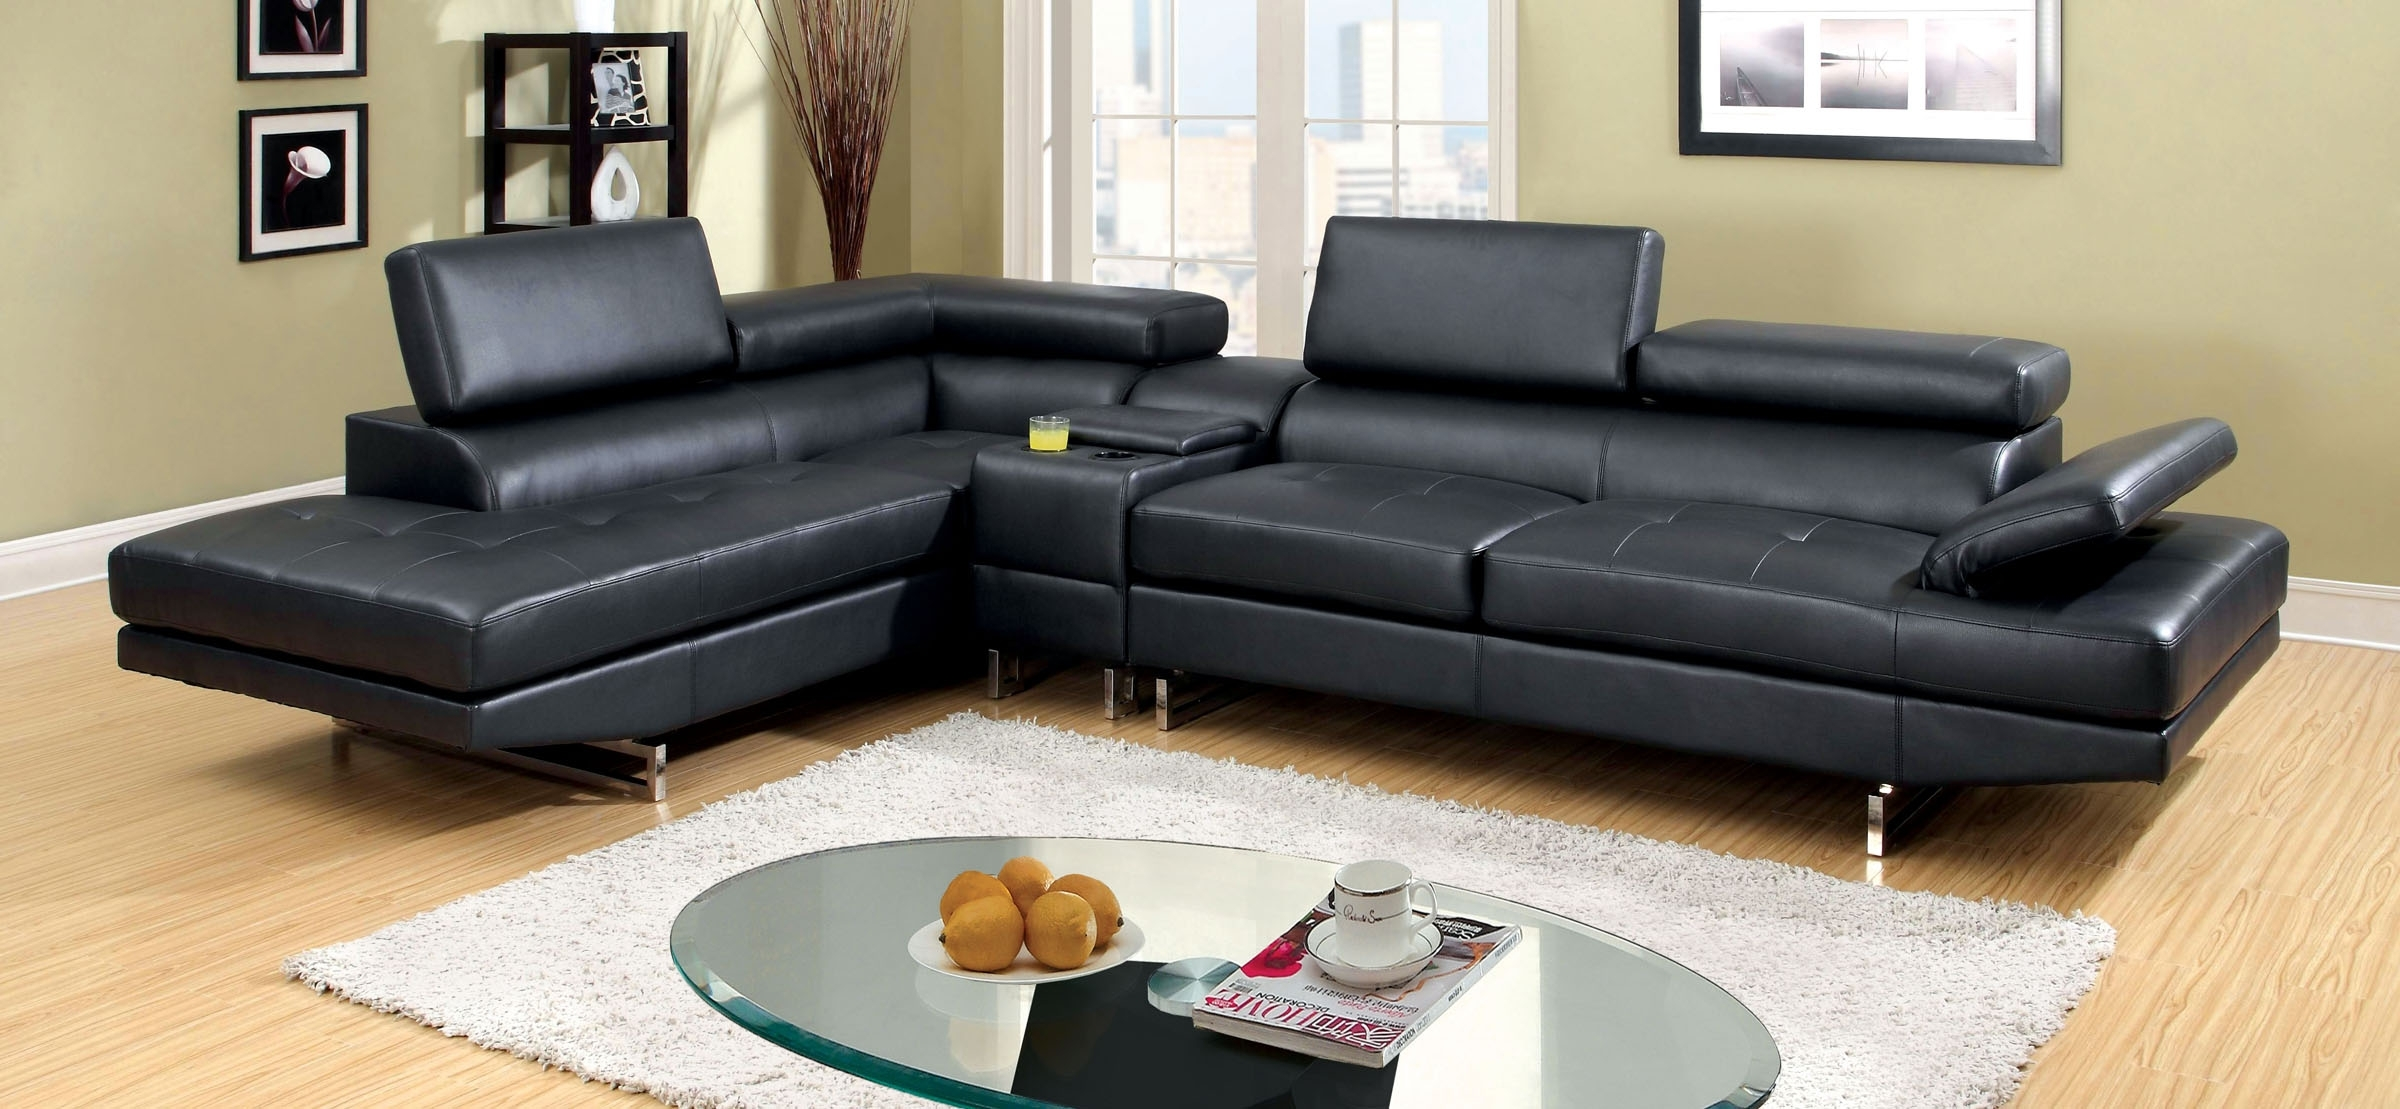 Famous Sectional Sofas With Consoles With Regard To Kemi Contemporary Black Bonded Leather Match Sectional Sofa Chaise (View 19 of 20)